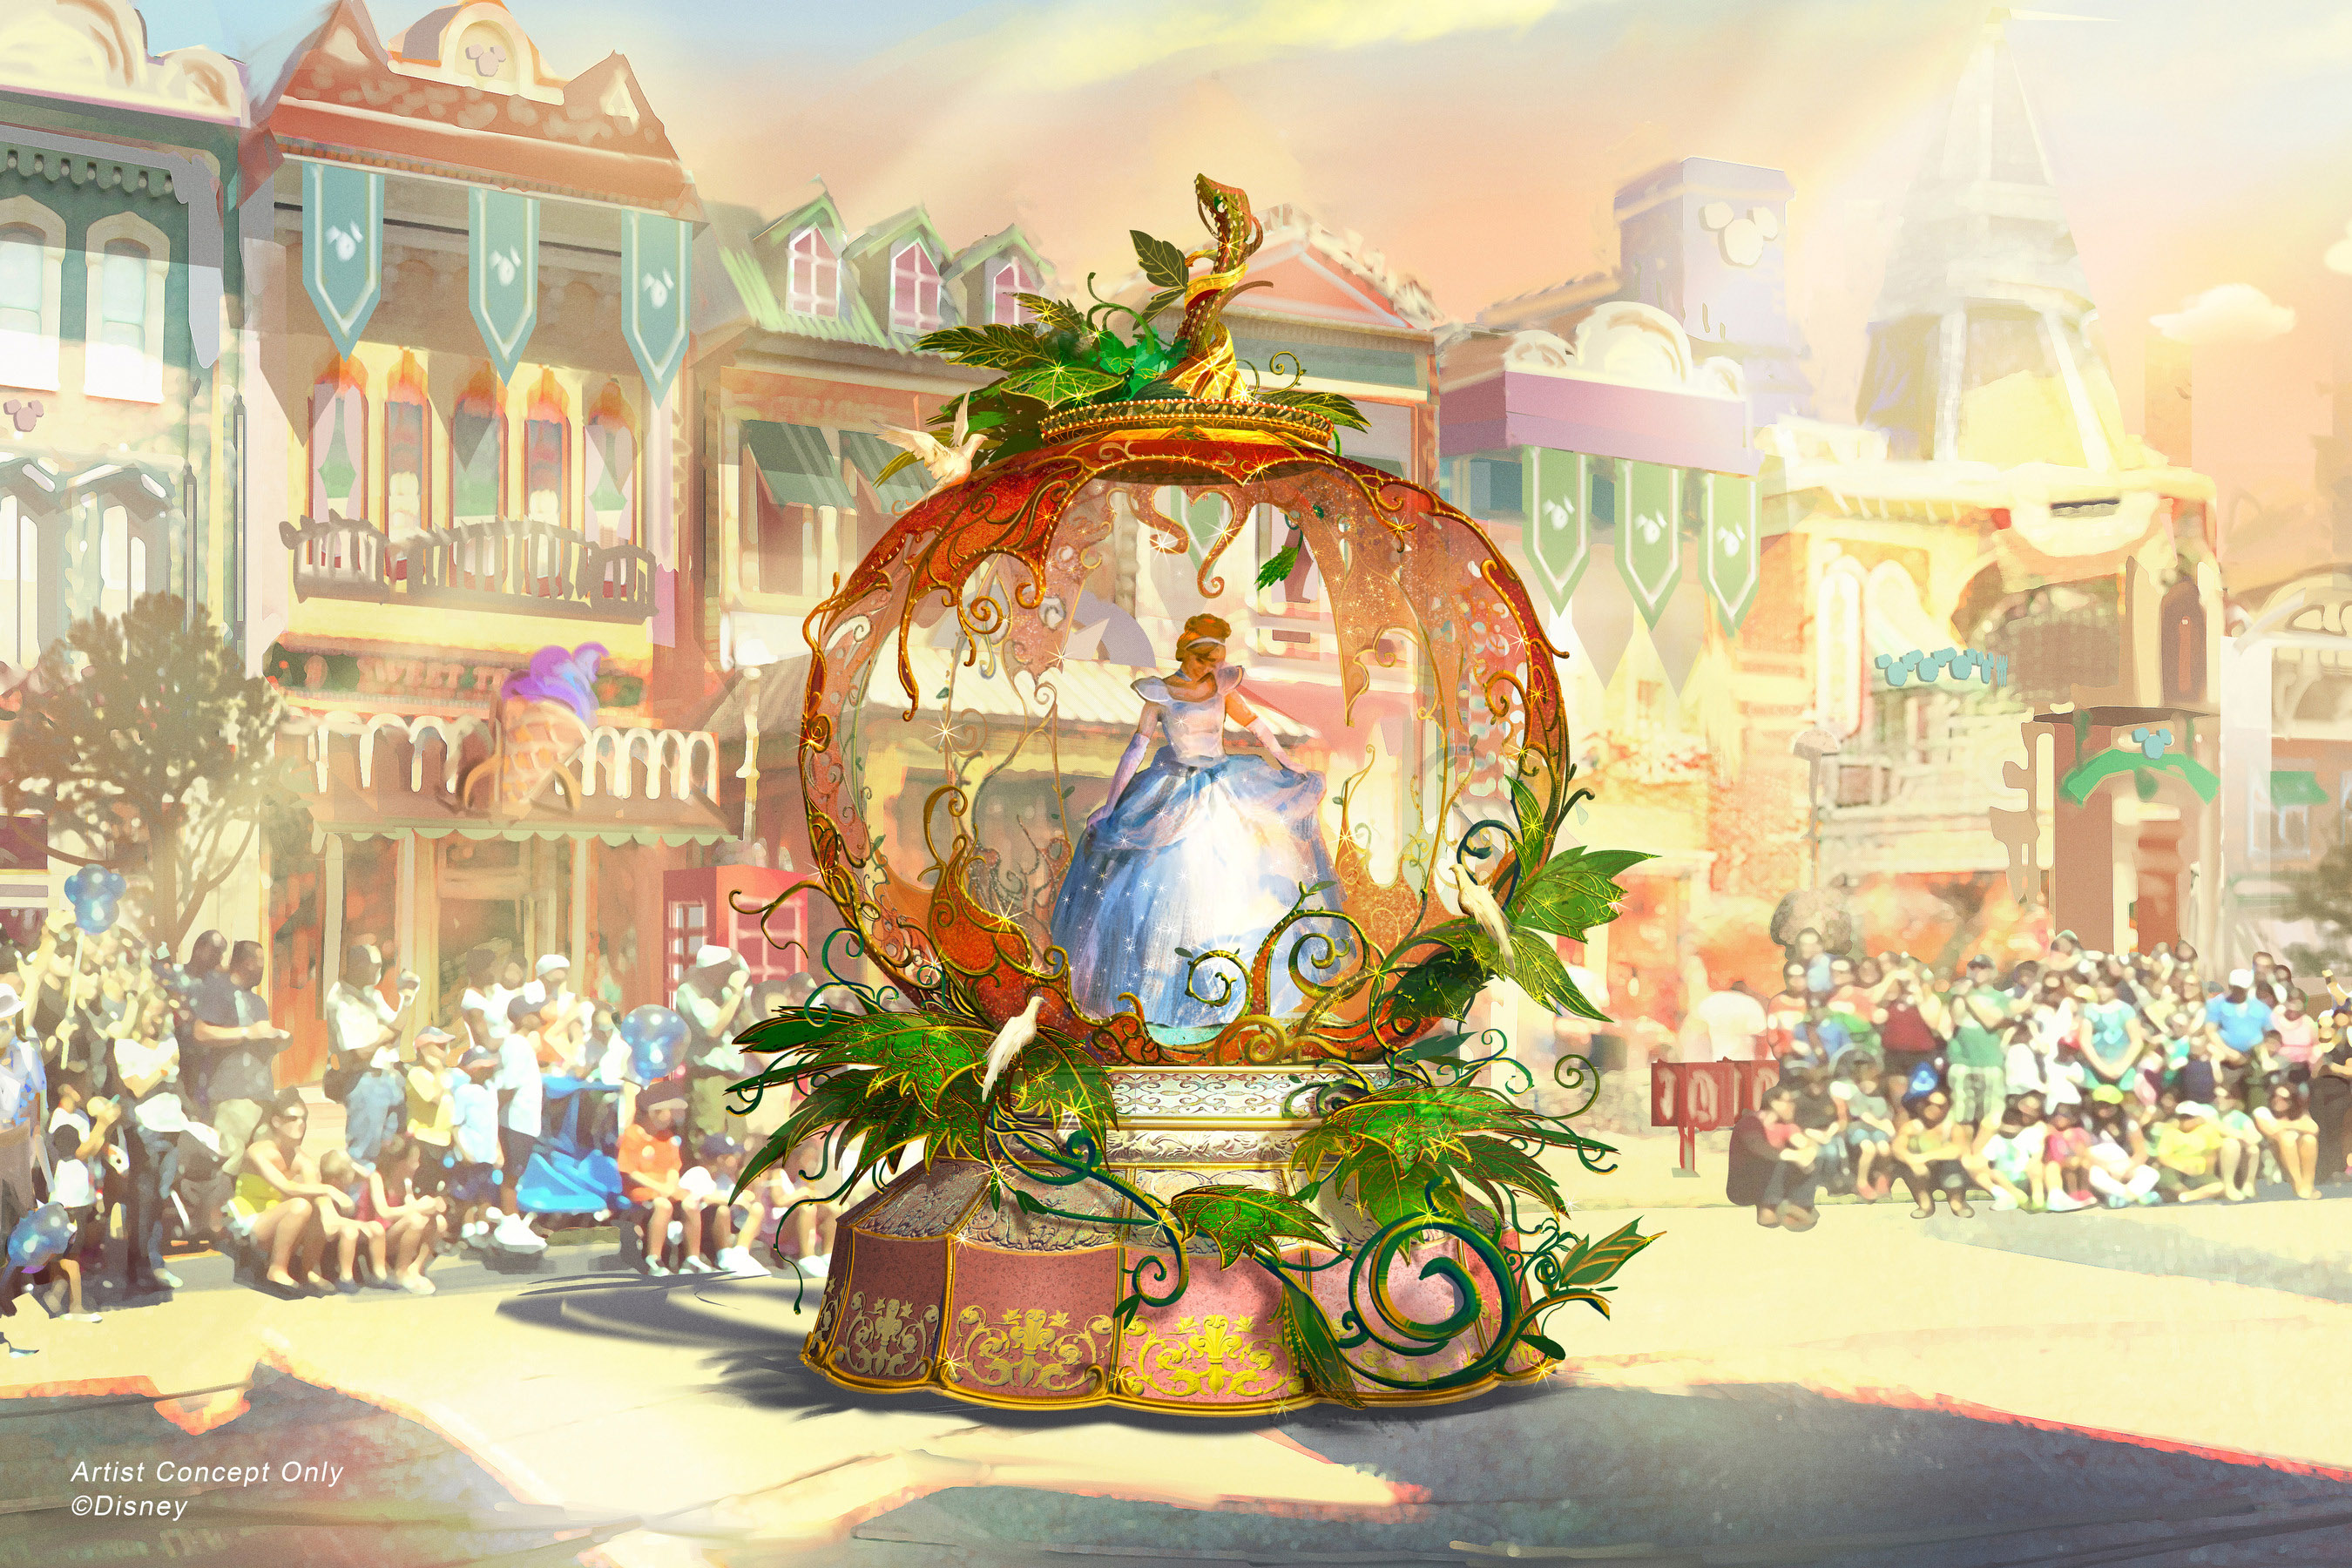 """Set to debut Feb. 28, 2020, at Disneyland Park in California, the new """"Magic Happens"""" parade will celebrate the awe-inspiring moments of magic that are at the heart of so many Disney stories. This new daytime spectacular will feature stunning floats, beautiful costumes, and beloved Disney characters. Depicted in this image, Cinderella is seen inside a grand pumpkin, just as it magically transforms into a glistening carriage to whisk her off to the ball. (Disney)"""